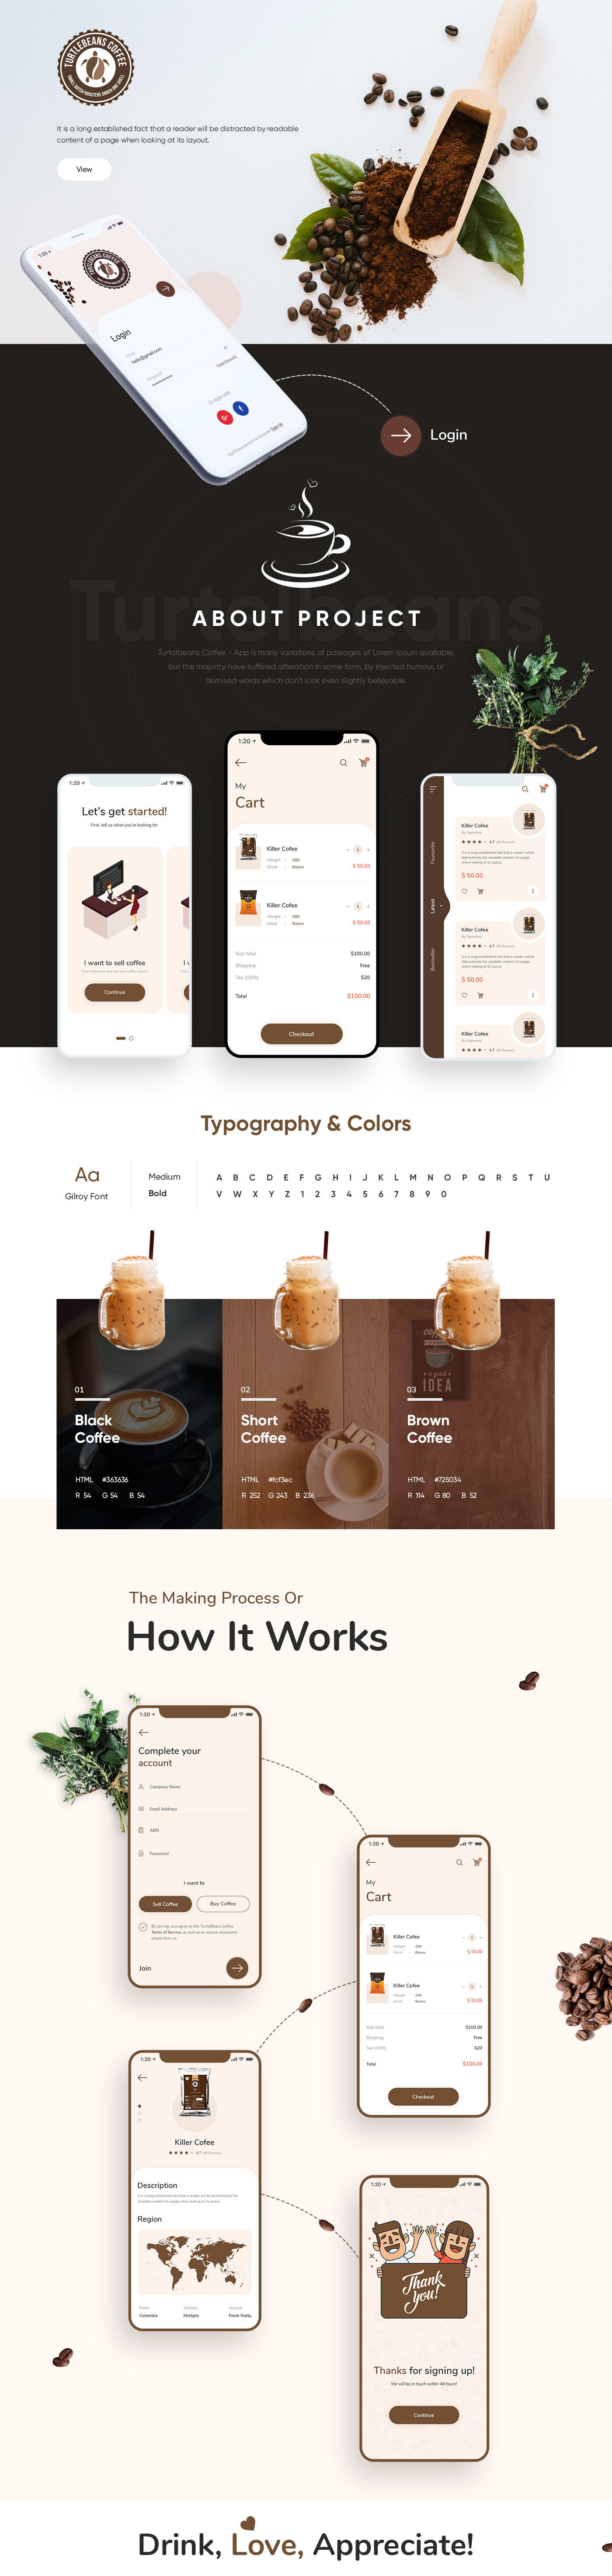 Turtlebeans Coffee - Mobile App Design